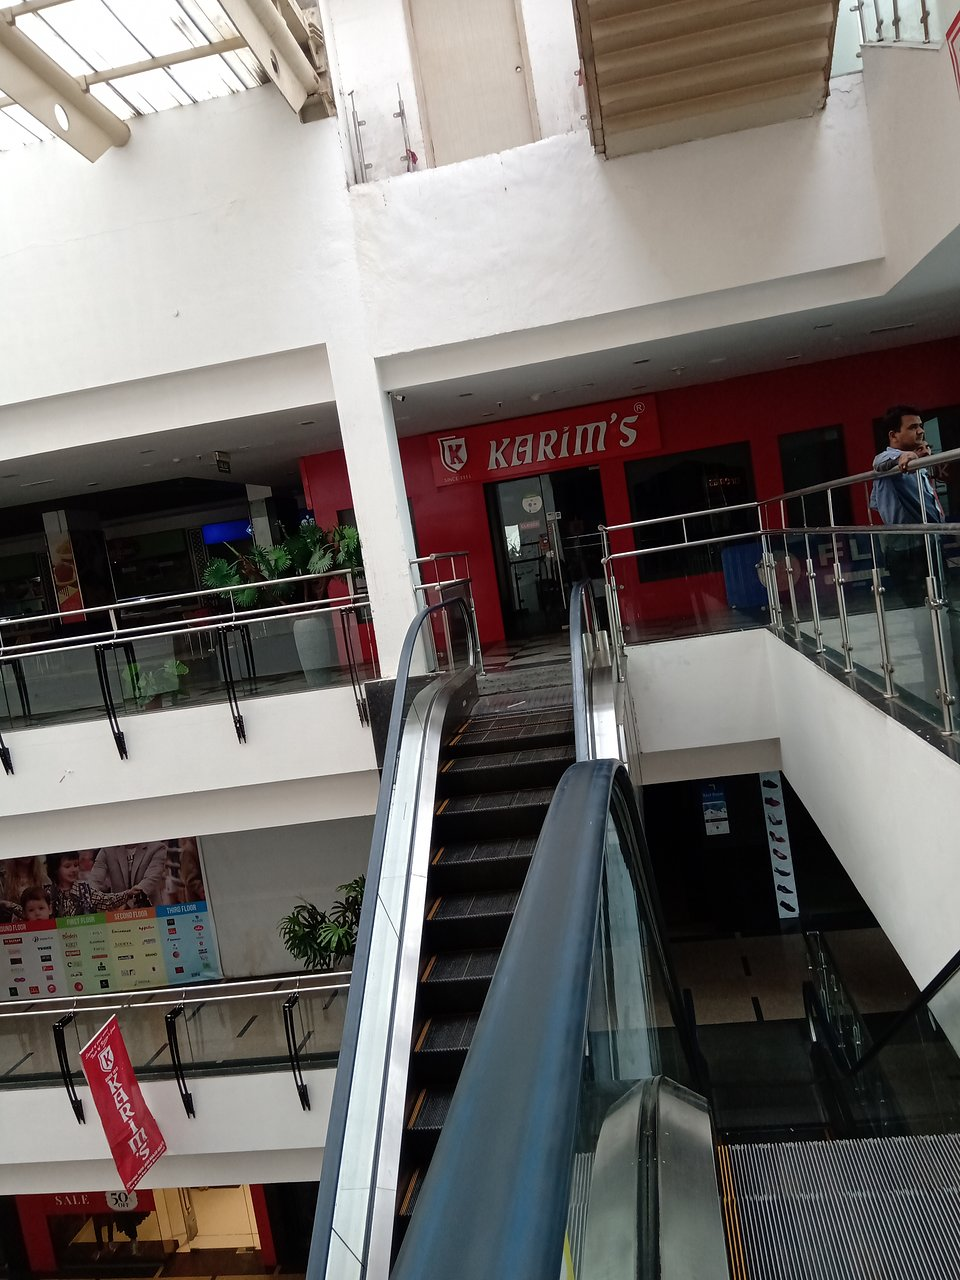 East Delhi Mall Ghaziabad 2020 All You Need To Know Before You Go With Photos Tripadvisor